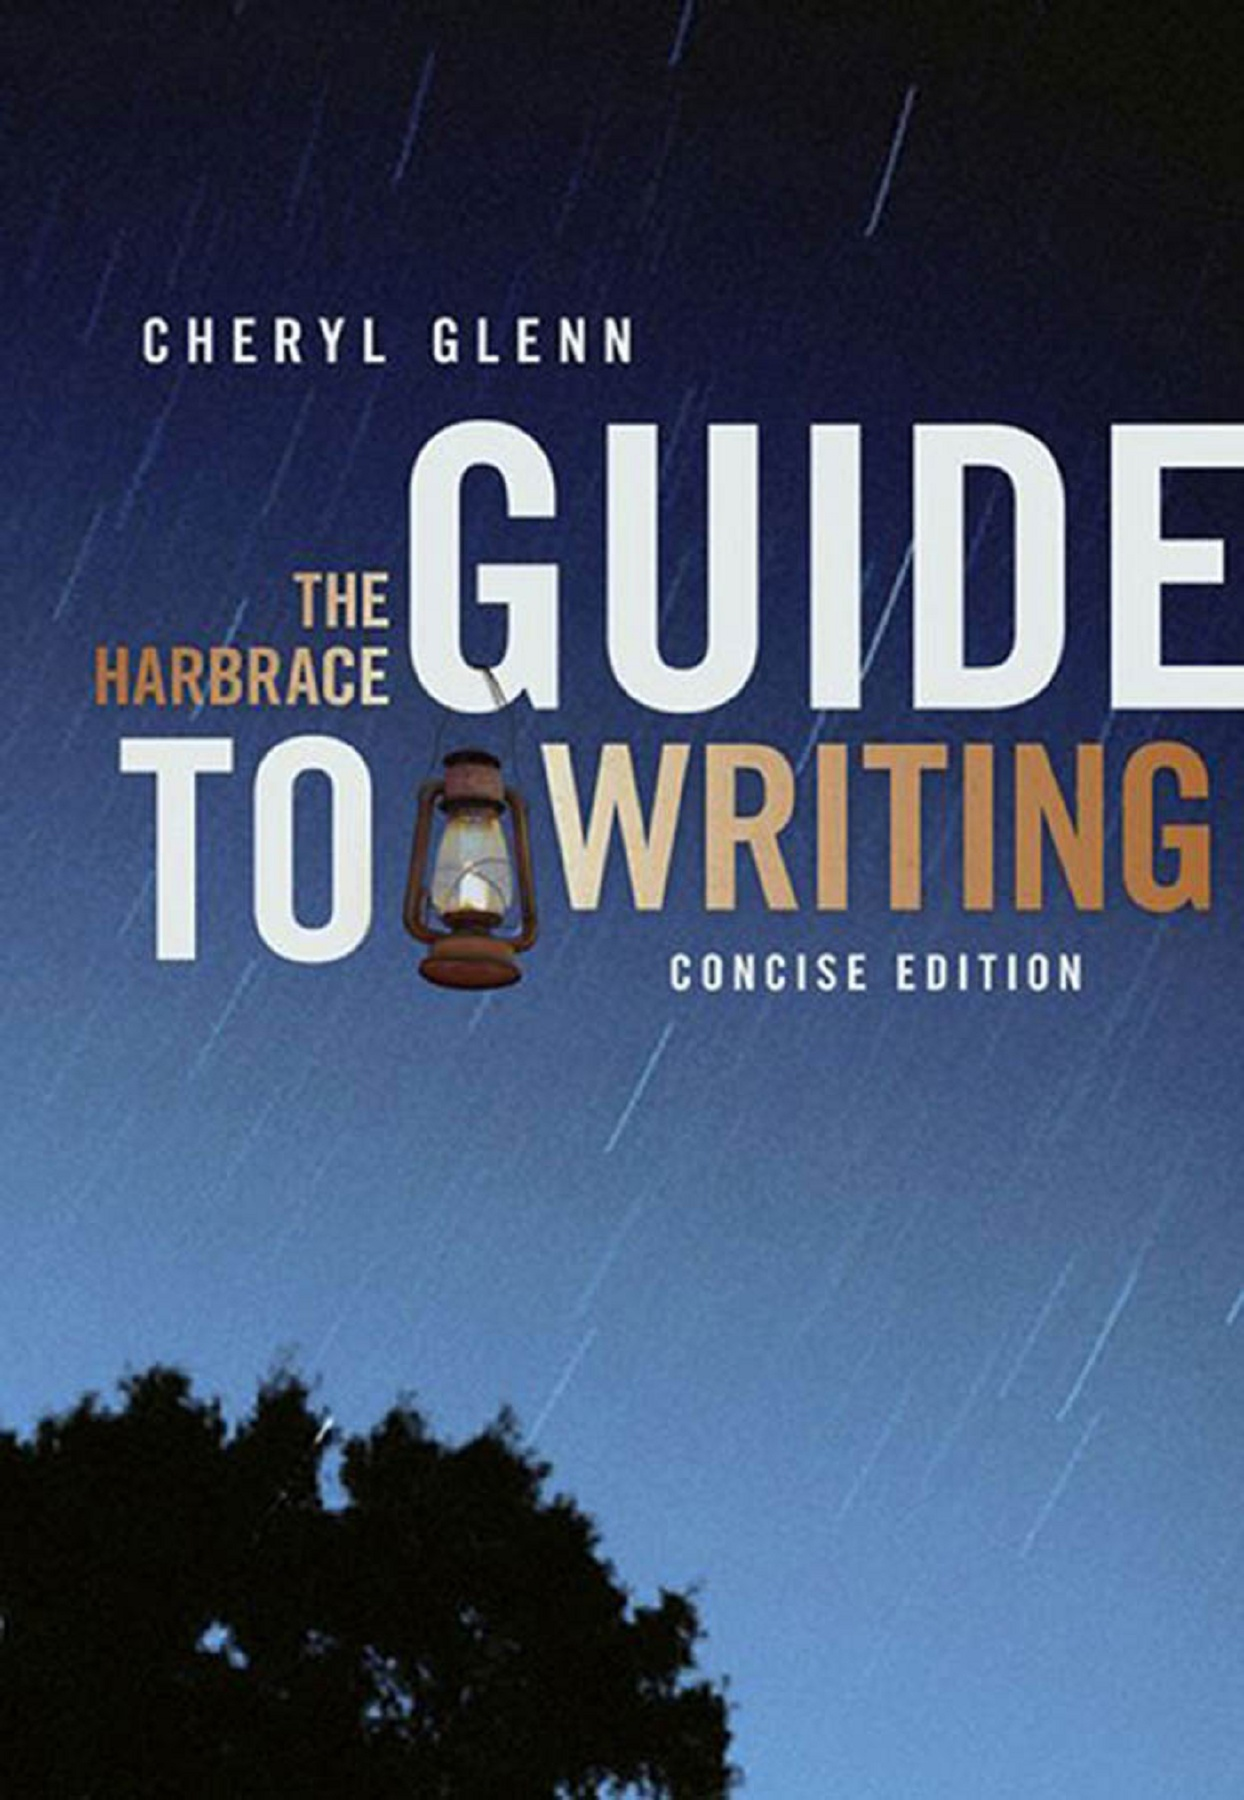 Amazon. Com: the harbrace guide to writing, concise, 2009 mla.